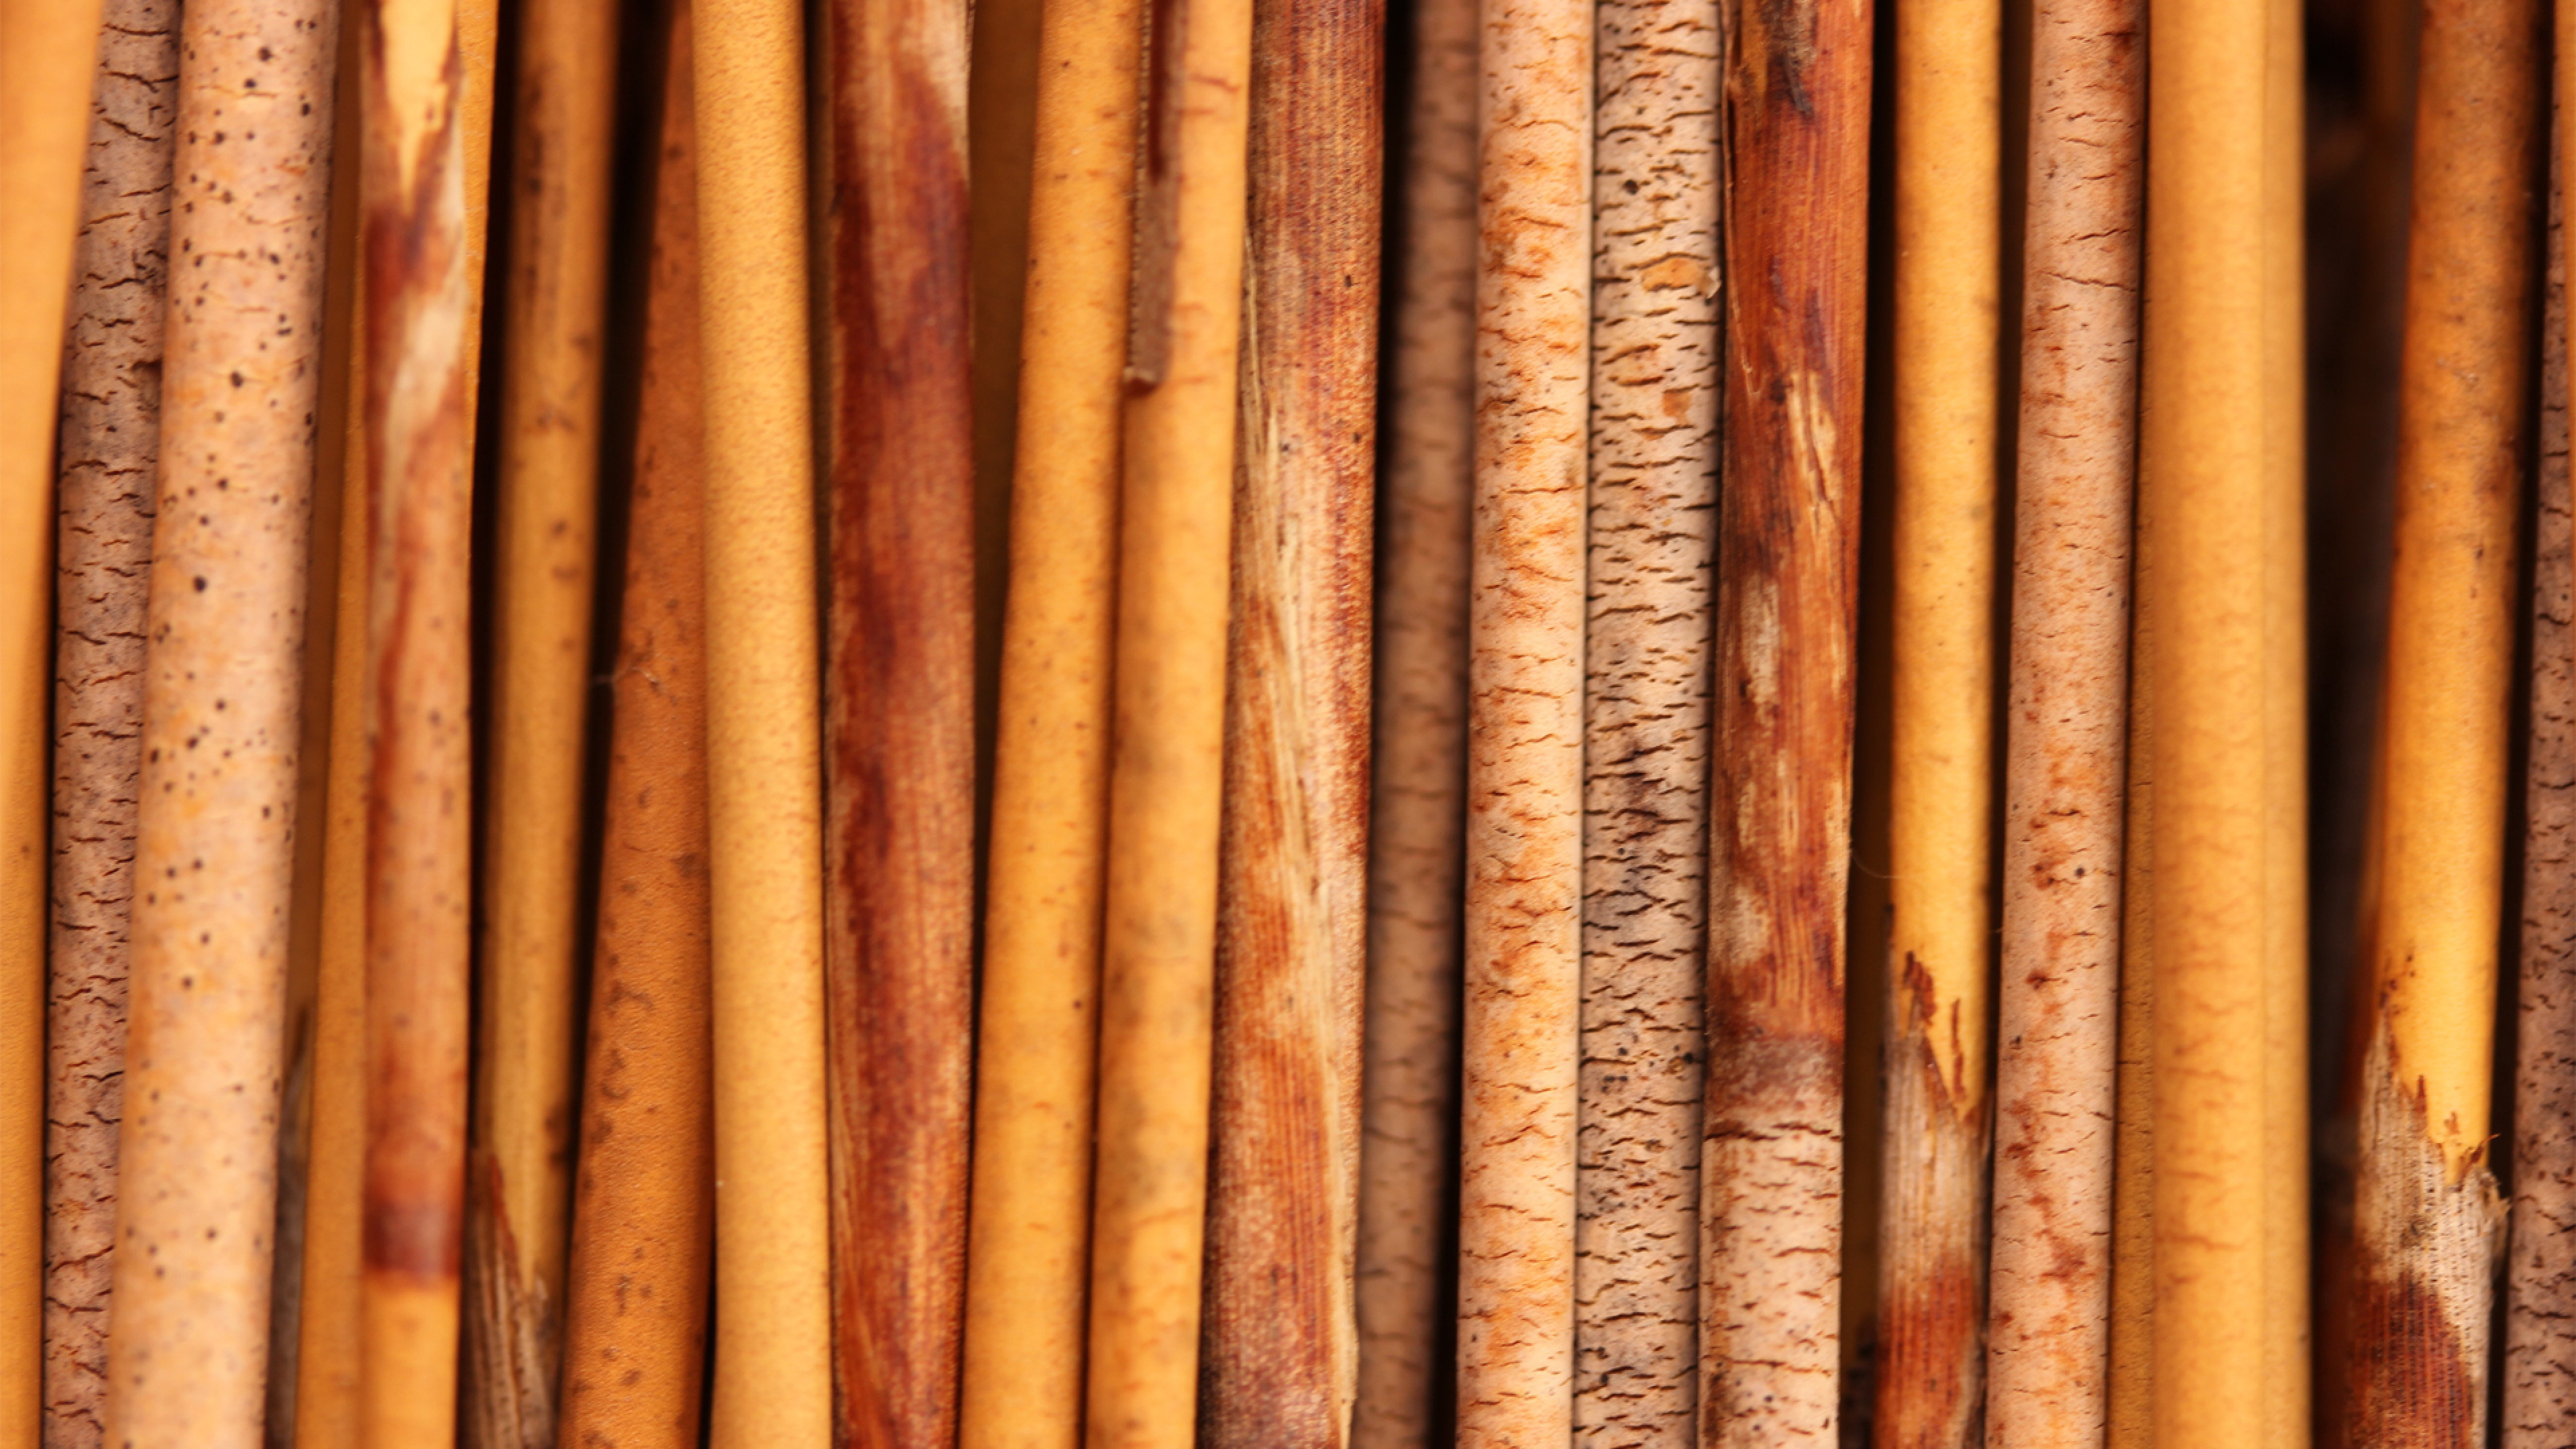 bamboo_texture_tree_background_94997_3840x2160